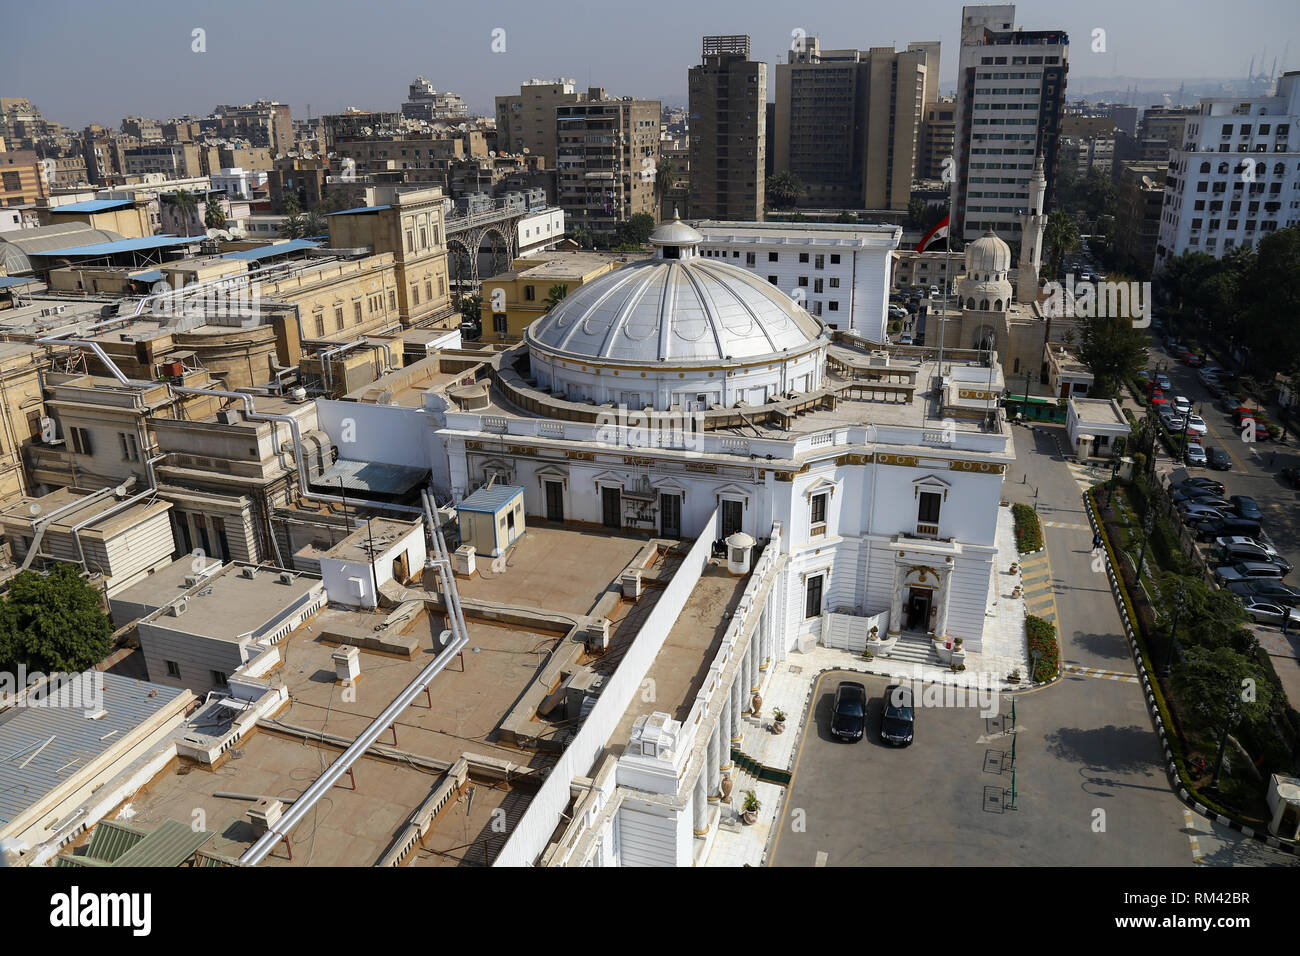 Cairo, Egypt. 13th Feb, 2019. A view of the building of the Egyptian Parliament. The parliament held a plenary session today to deliberate the proposed constitutional amendments that will increase the country's President term in office from four to six years. The Parliament members will vote later on the amendments before referring it to the Legislative and Constitutional Affairs Committee to be discussed in detail and to be finalized before being referred to the president to be put up for a public vote in a national referendum. Credit: Lobna Tarek/dpa/Alamy Live News - Stock Image